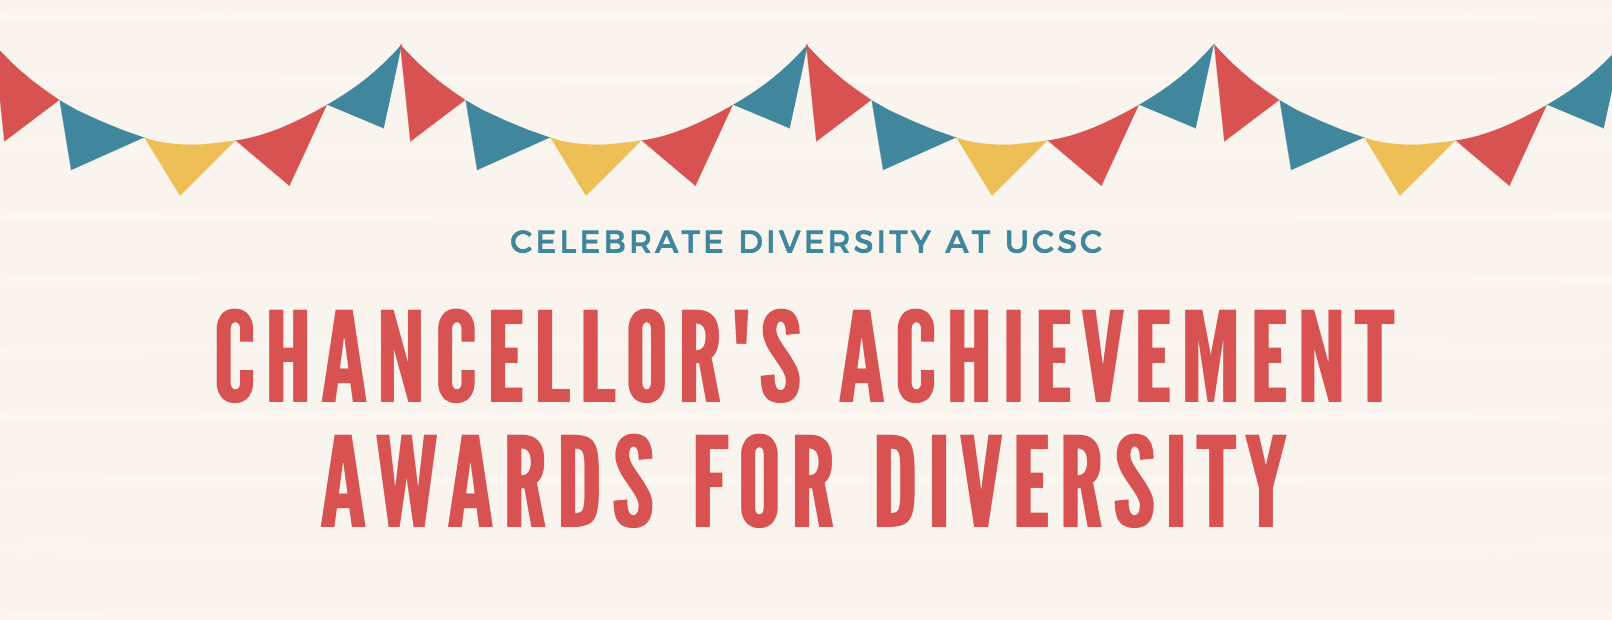 Click here for more information about the 2018 Chancellor's Achievement Awards for Diversity!